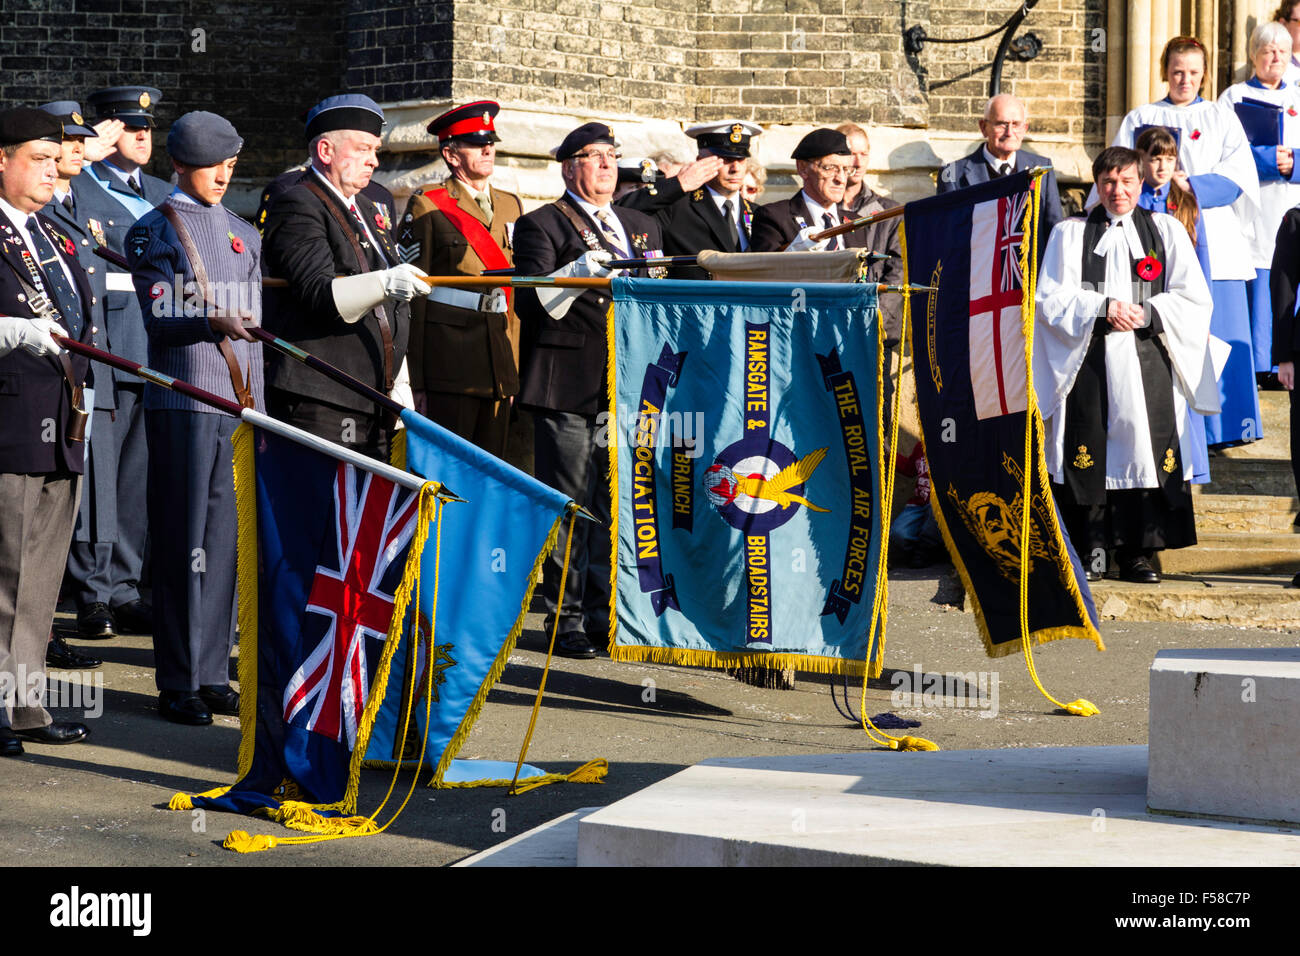 England, Ramsgate. Remembrance Sunday. Ex-servicemen, soldiers standing at attention in a line, while lowering flags - Stock Image